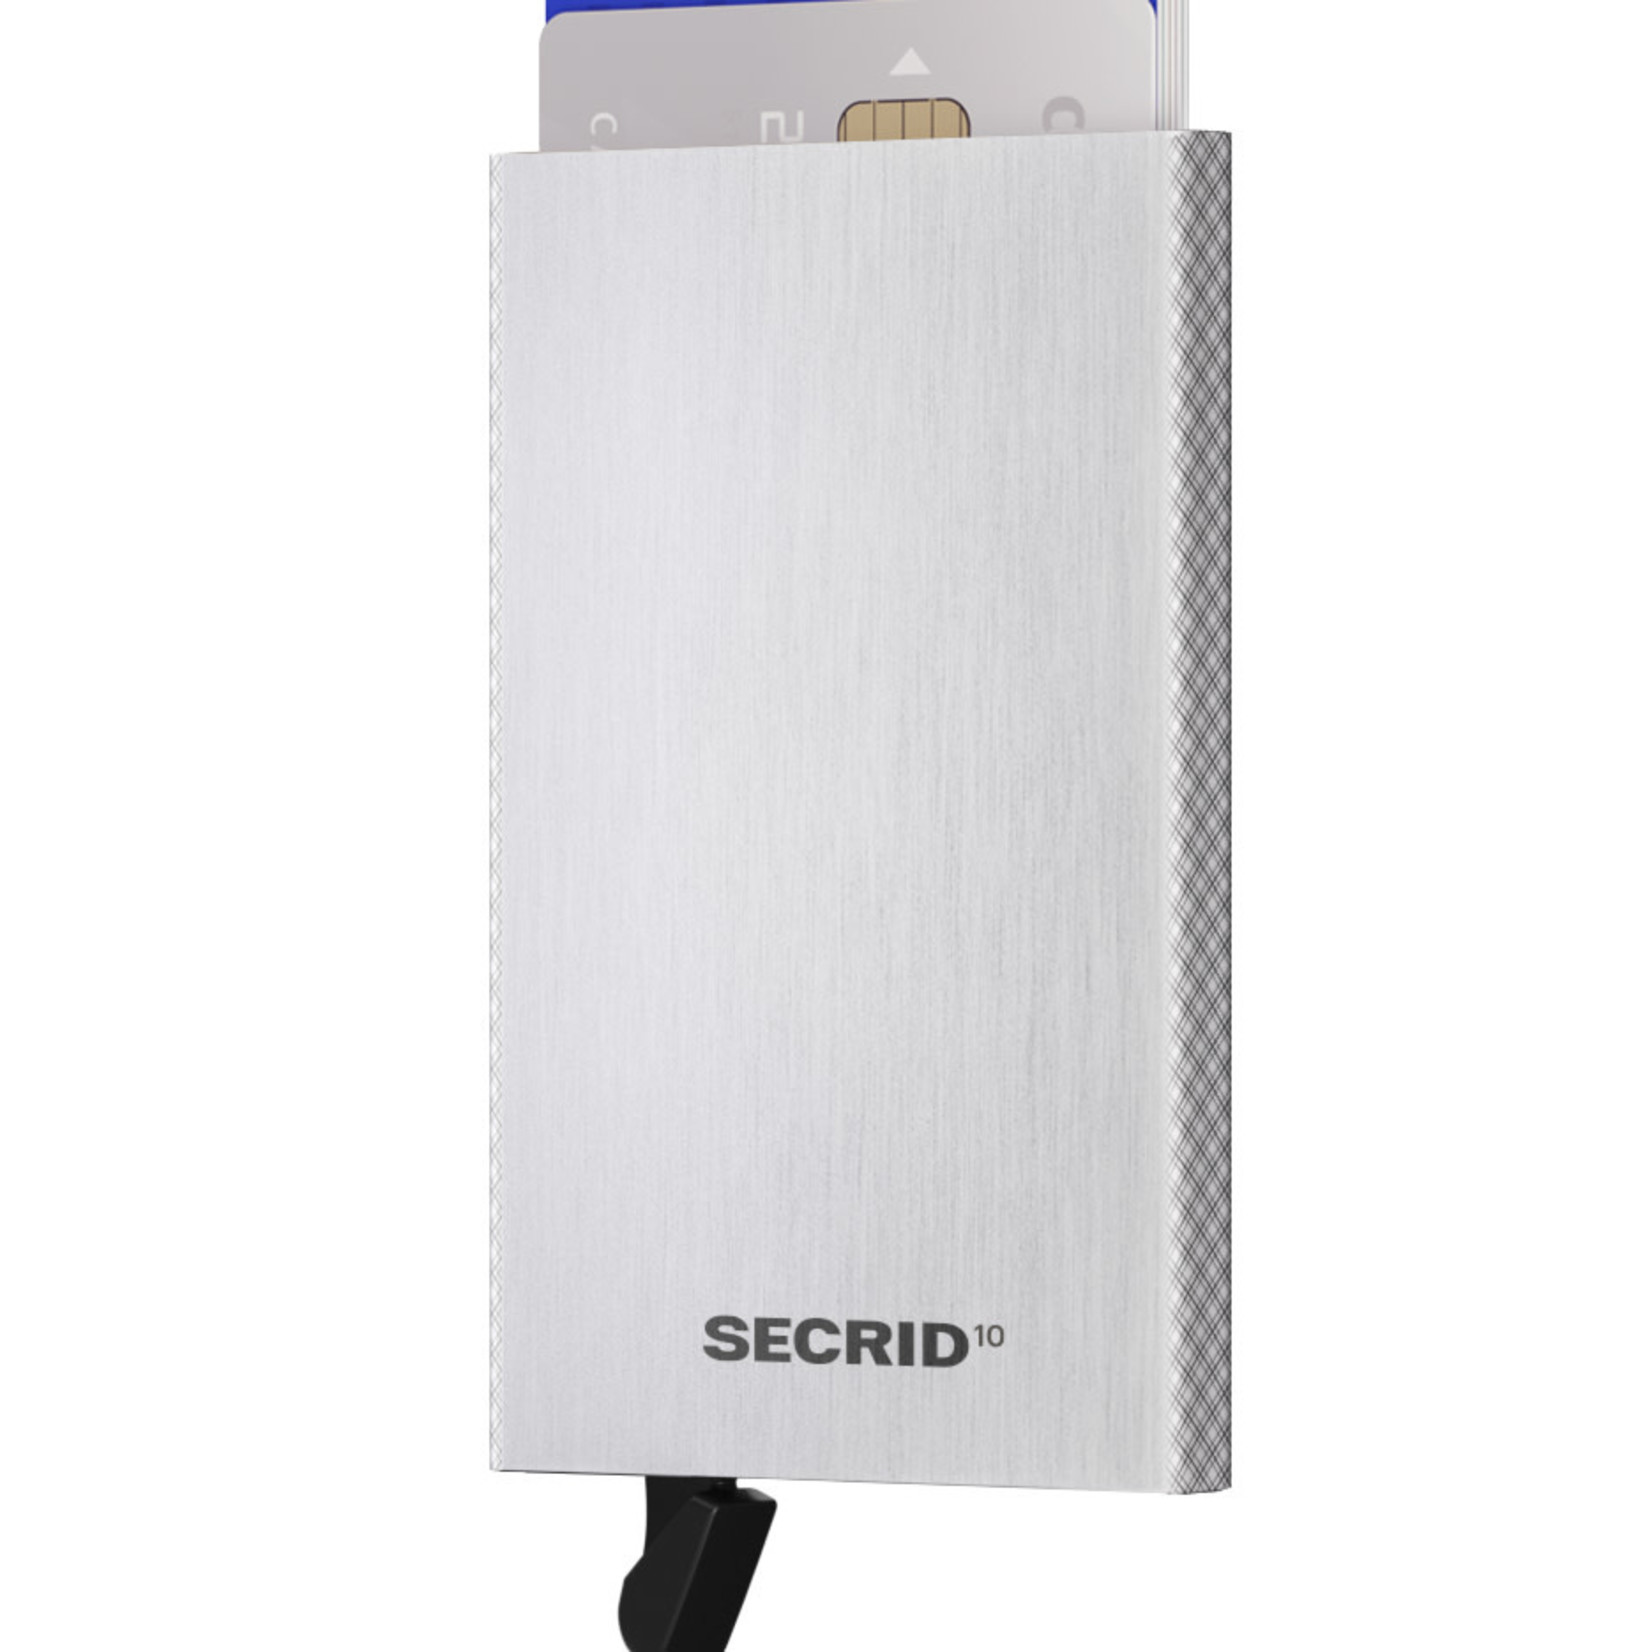 SECRID Cardprotector C10 (Limited)